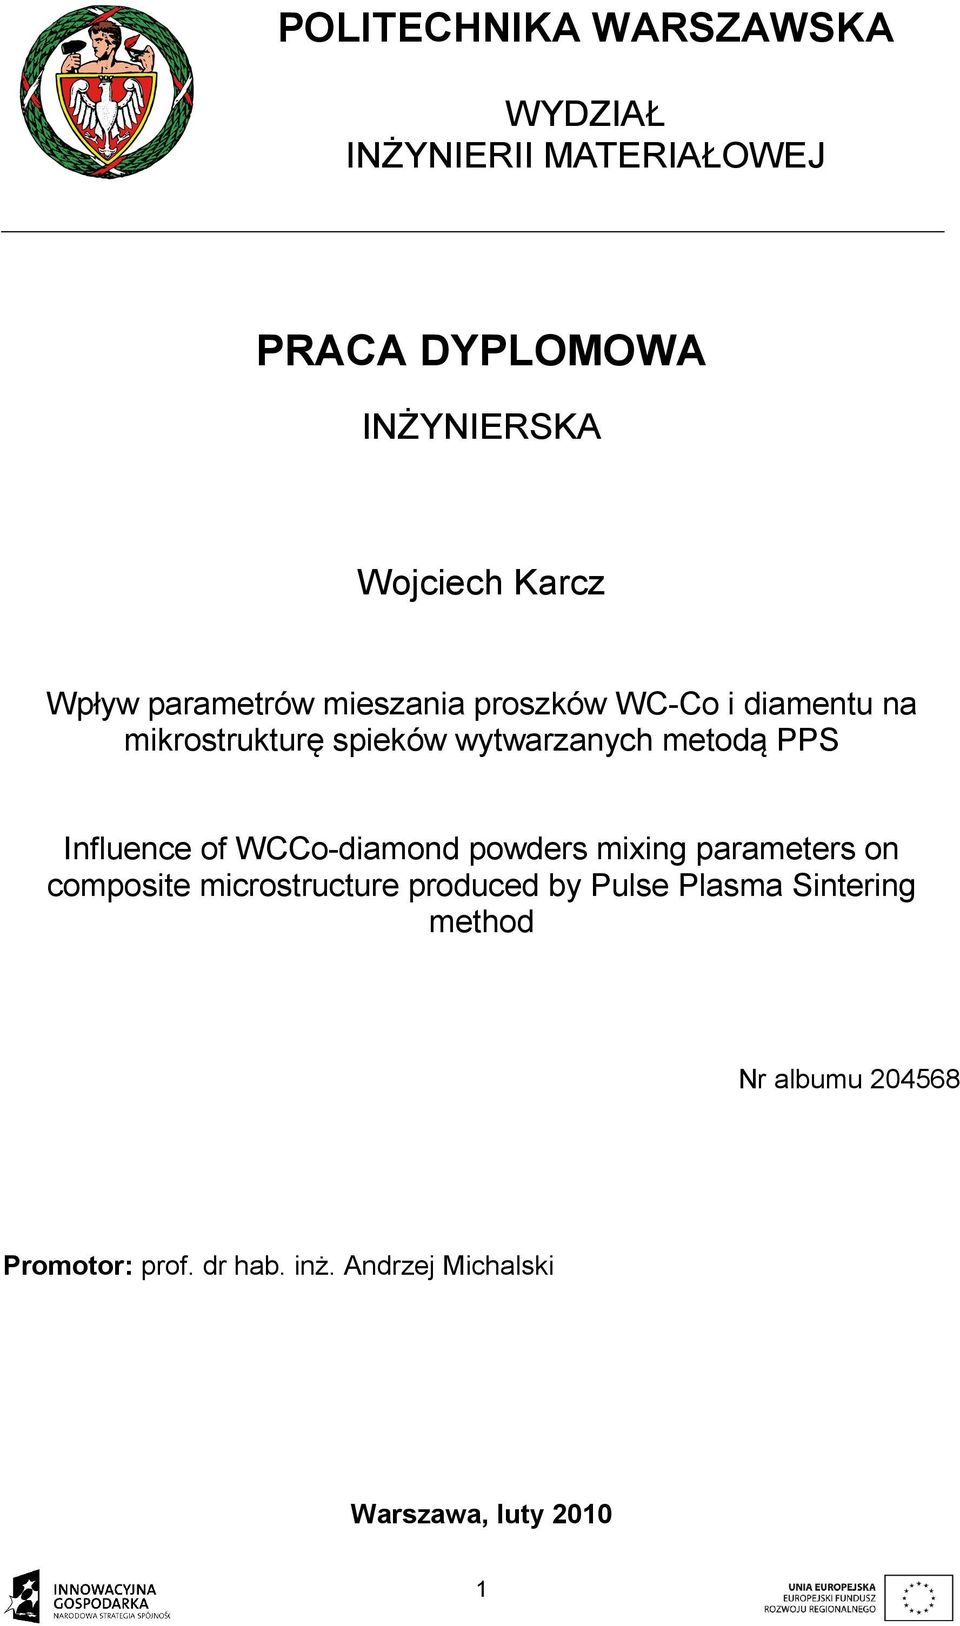 Influence of WCCo-diamond powders mixing parameters on composite microstructure produced by Pulse